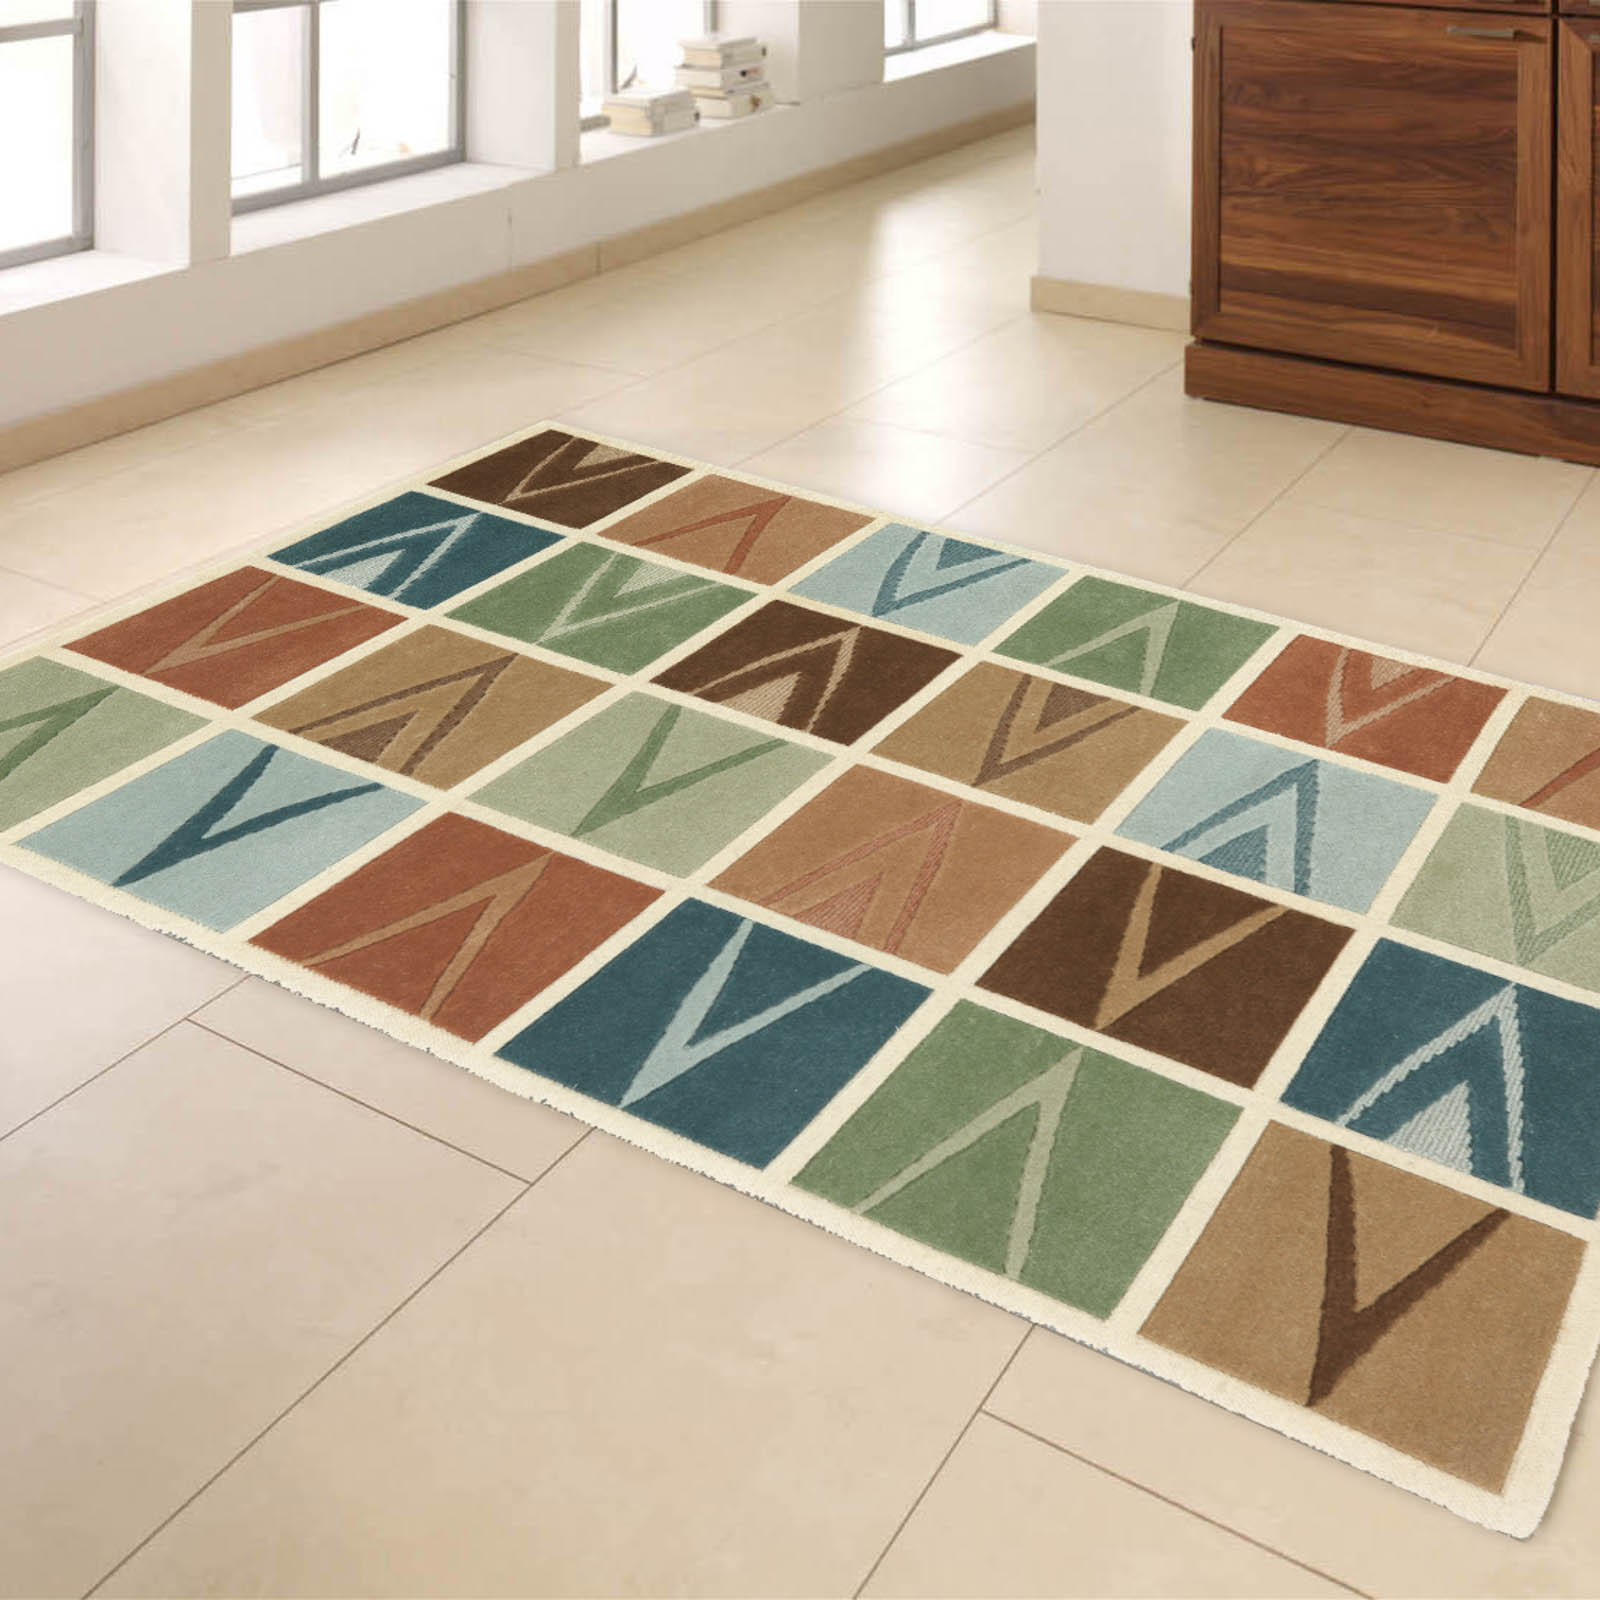 Symphony Rugs 17356 in Ivory and Multi-colours